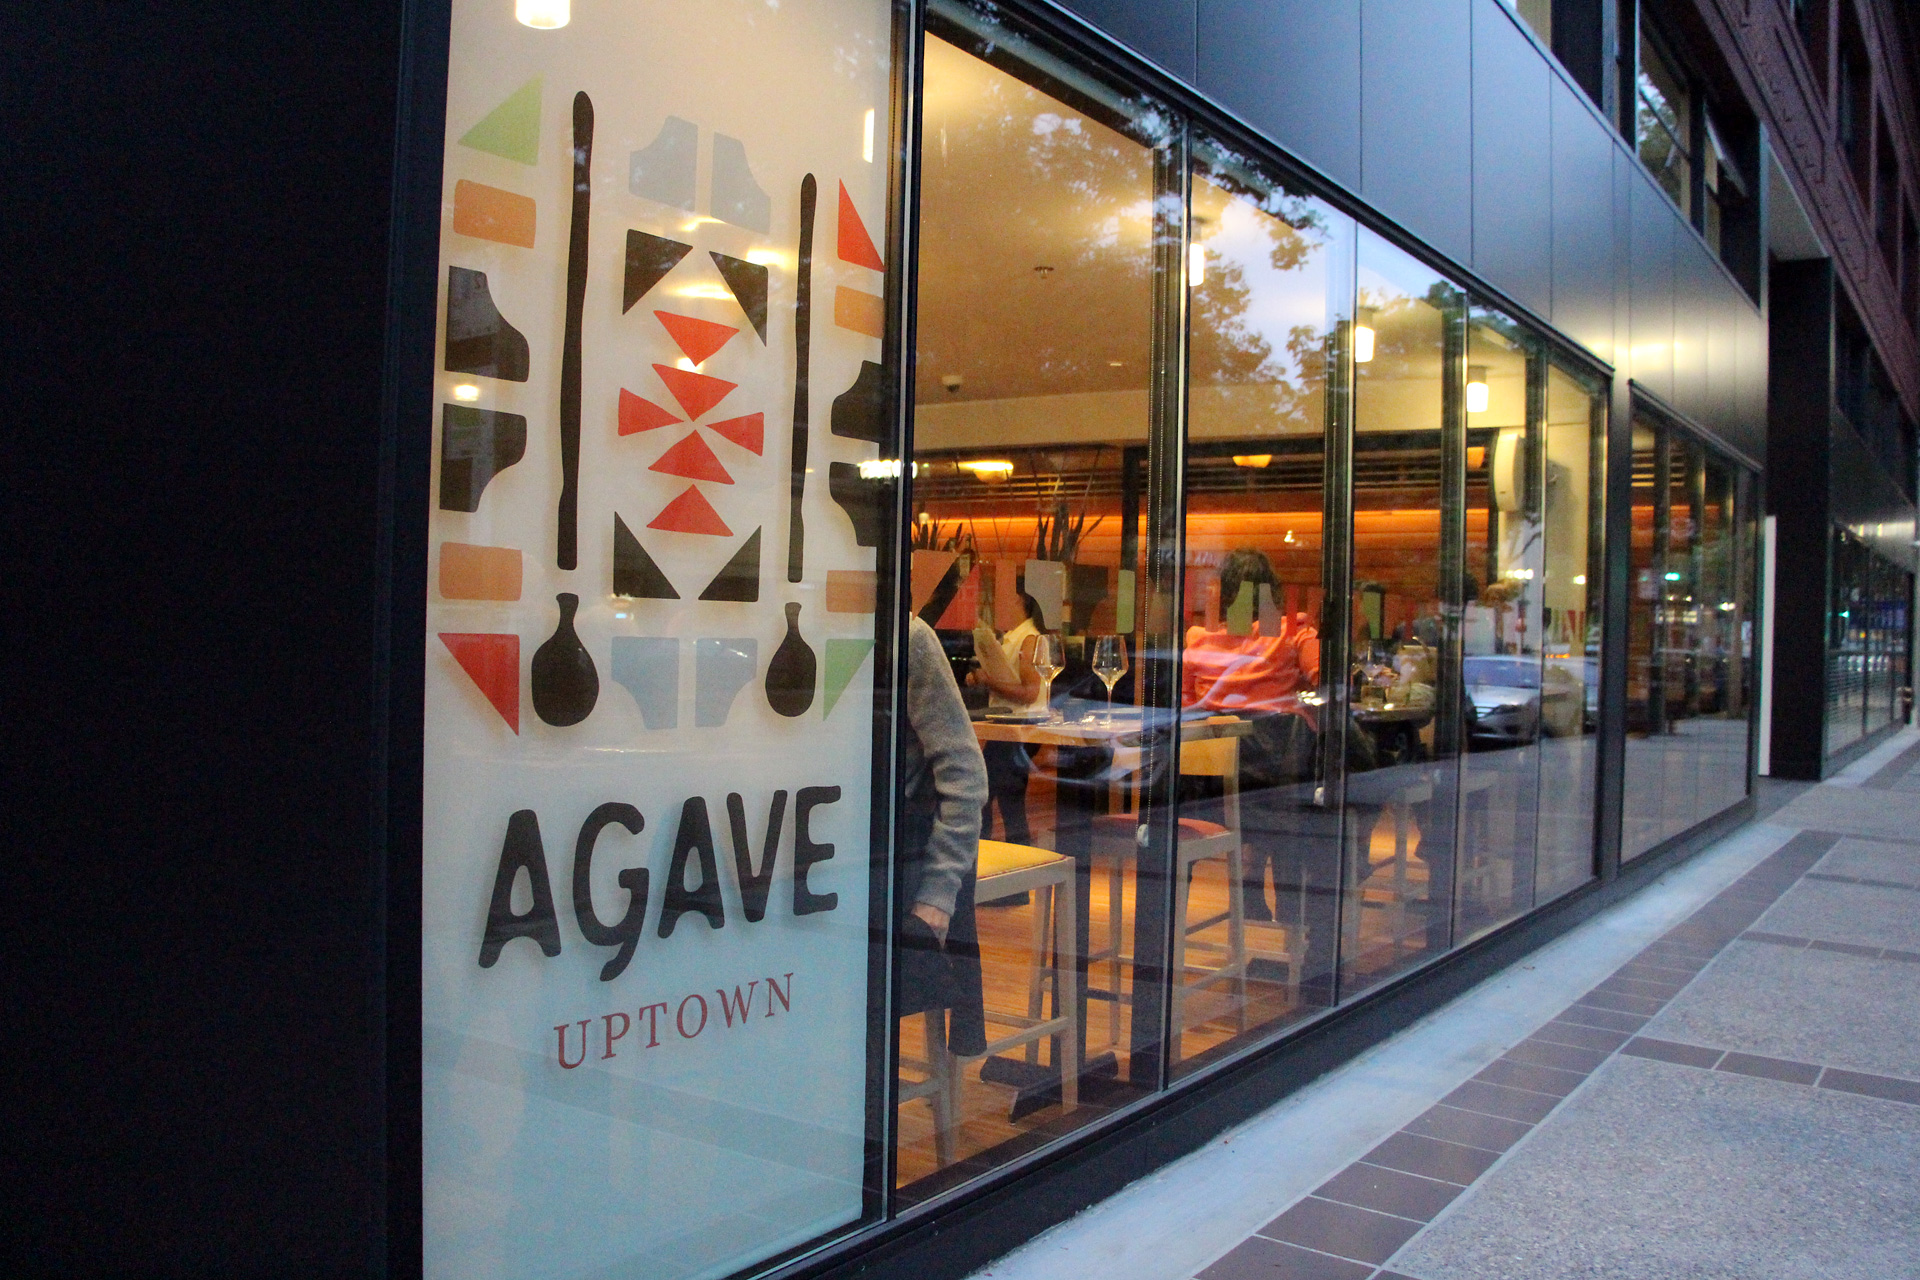 Agave Uptown exterior